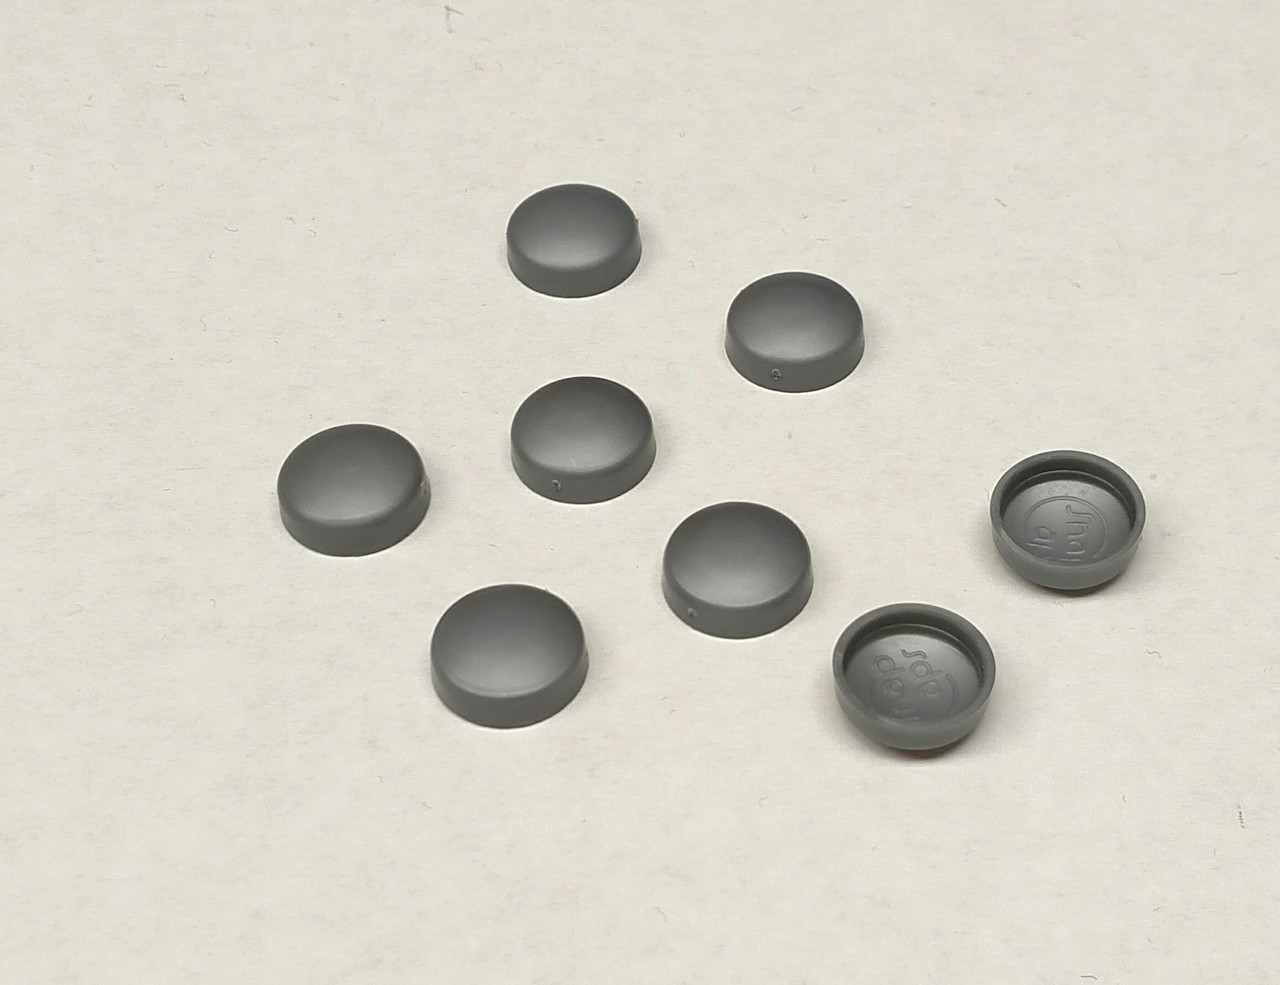 #12 Snap-Cap Silver Gray & Flat Base/Washer - 25 per Pack